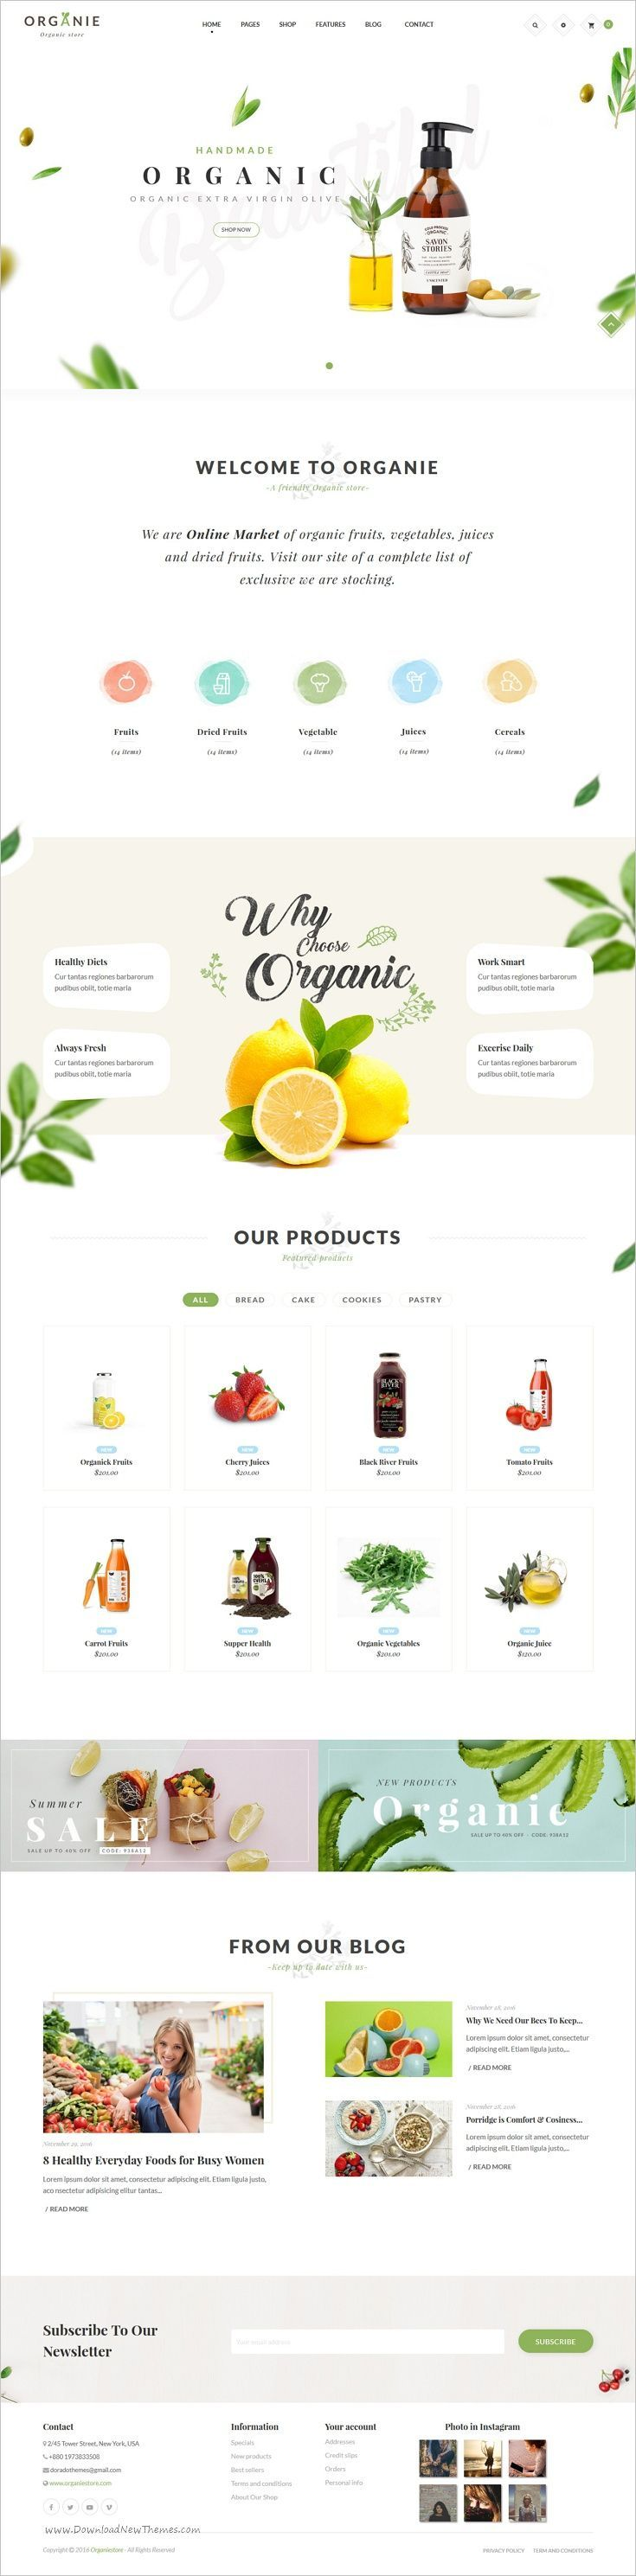 Organie is a wonderful responsive 12in1 #Prestashop theme for stunning #organic #store eCommerce websites with advanced admin module, extremely customizable download now➩ themeforest.net/...